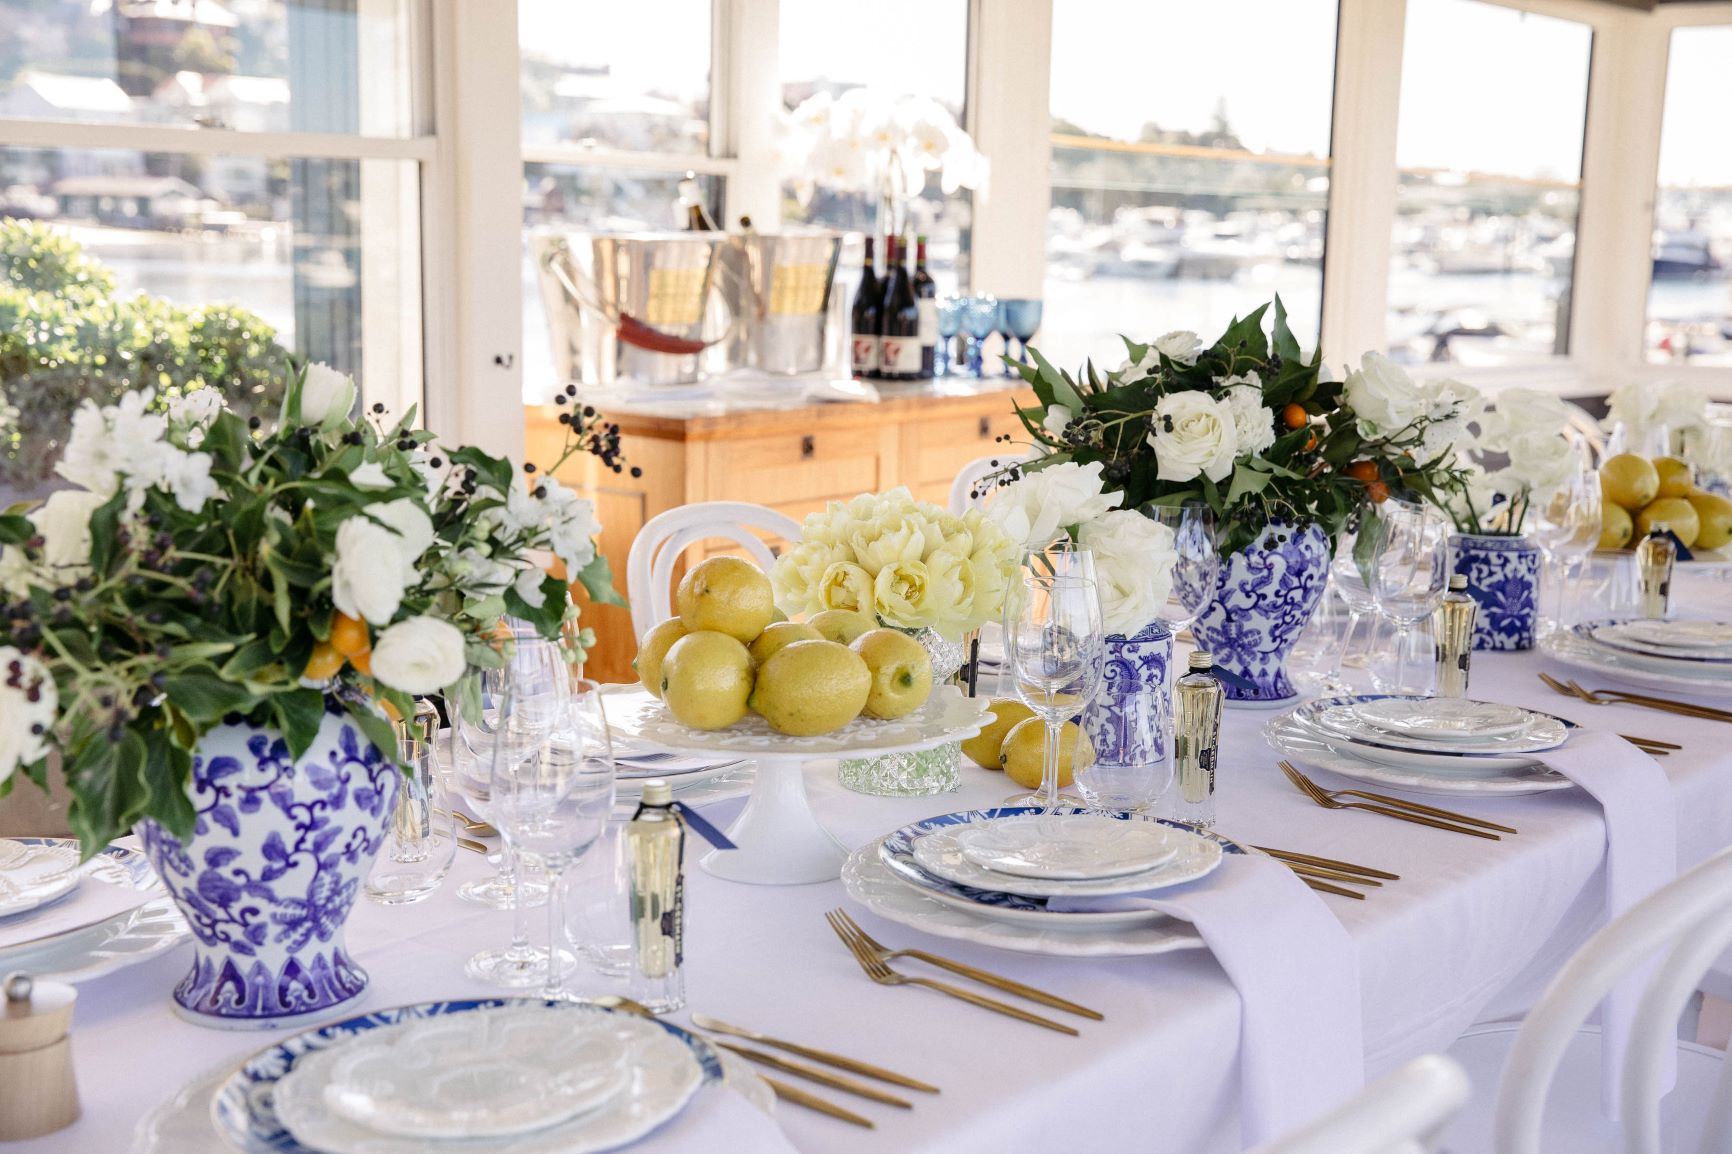 Regatta Rose Bay Event Table Setting Styled by The Curated Life.jpg